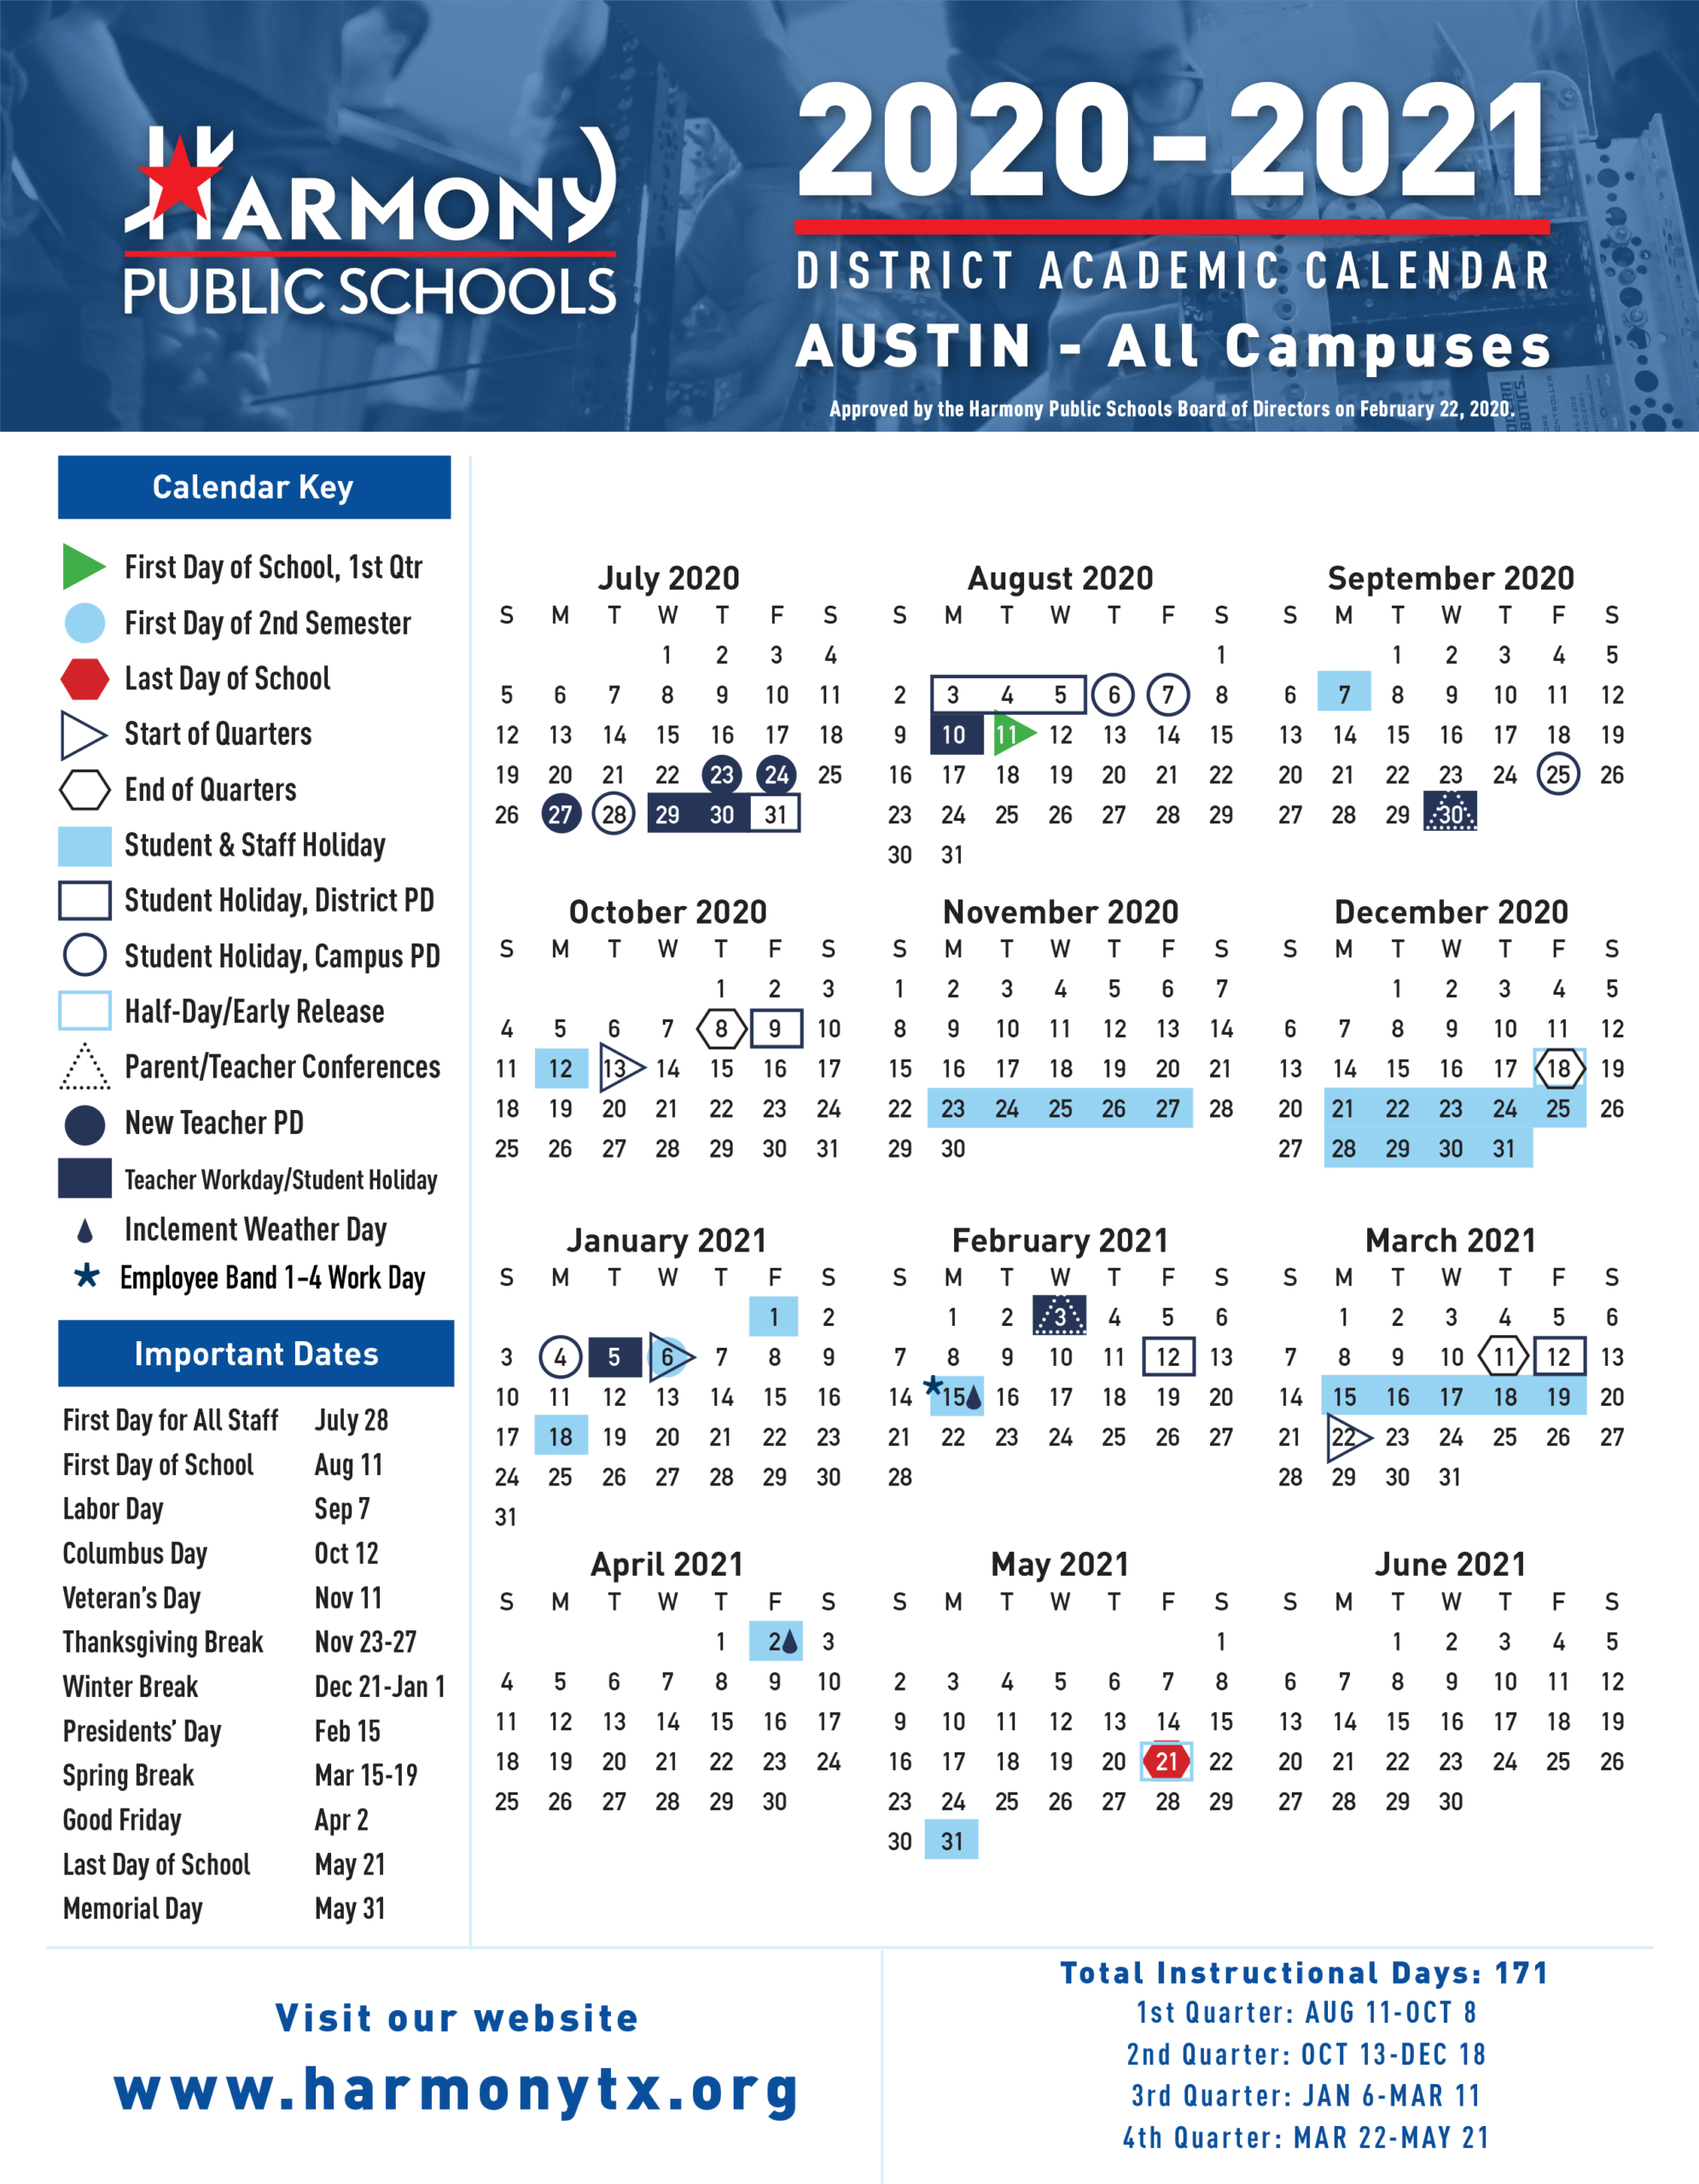 Austin Calendar One-Pager 2020-2021